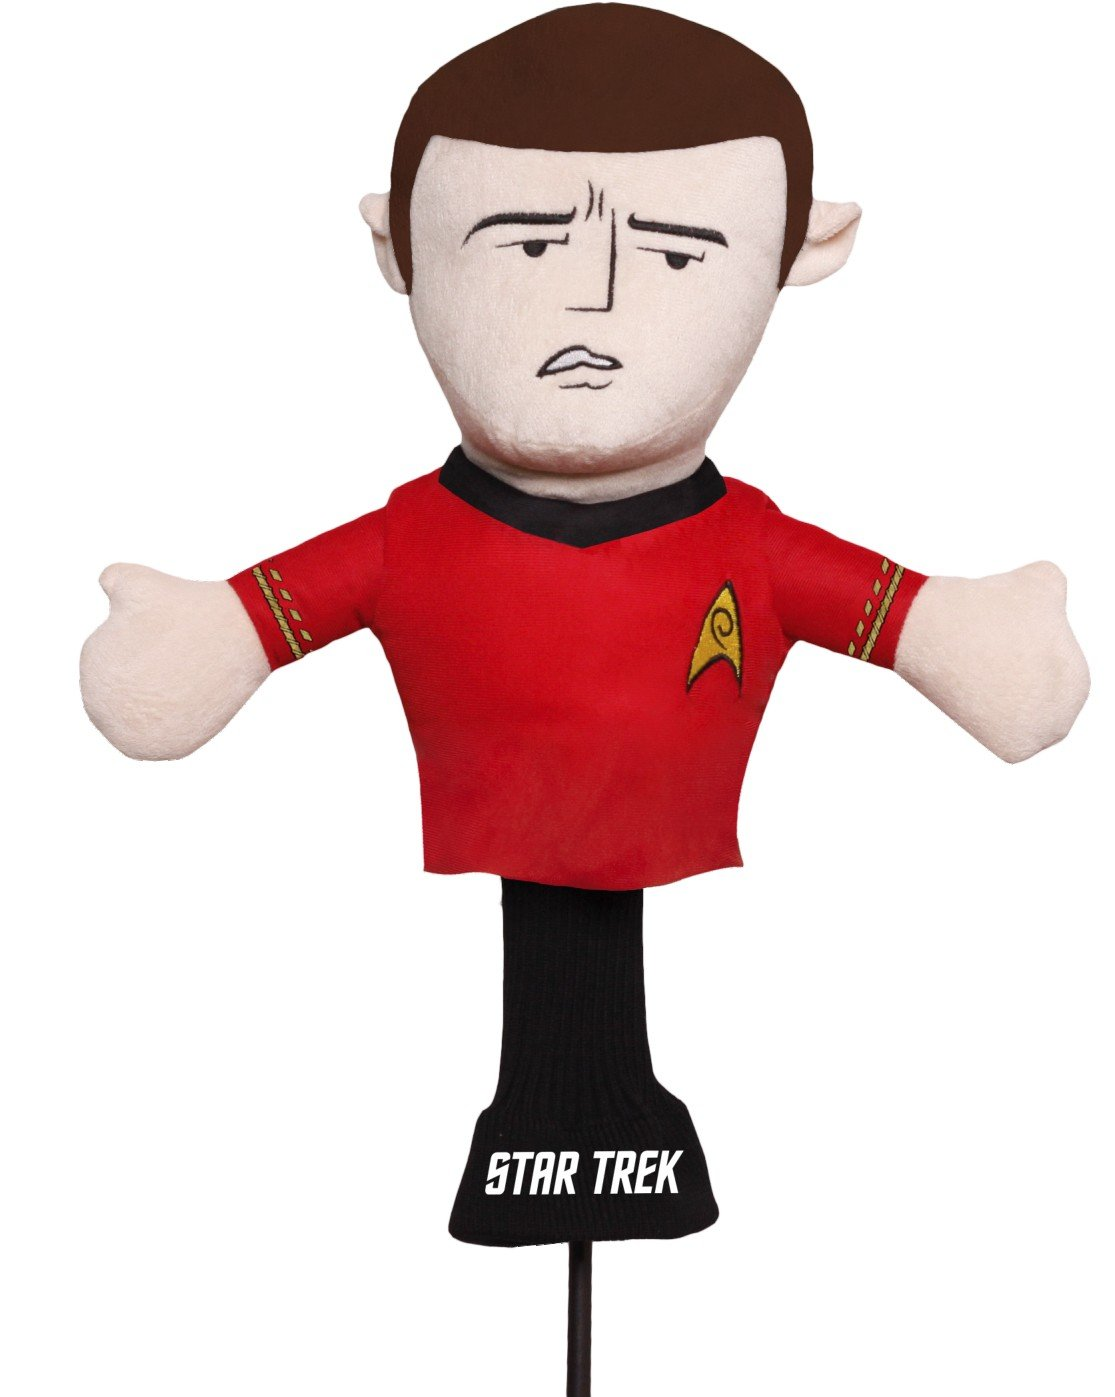 Creative Covers for Golf Star Trek Chief Engineer Scotty Club Head Covers